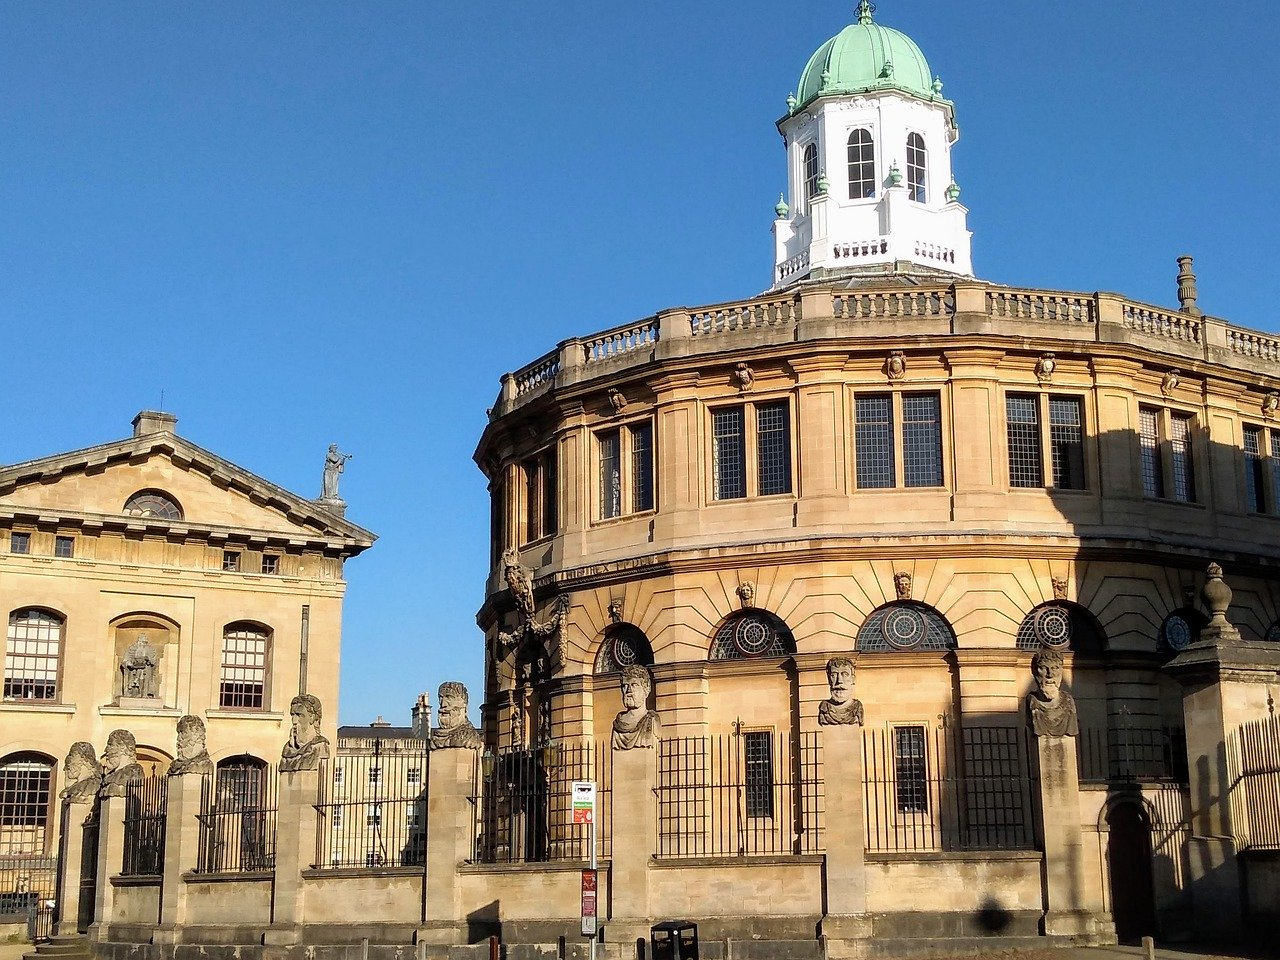 You must see the Sheldonian Theatre when you explore Oxford. Discover more Oxford attractions in the article